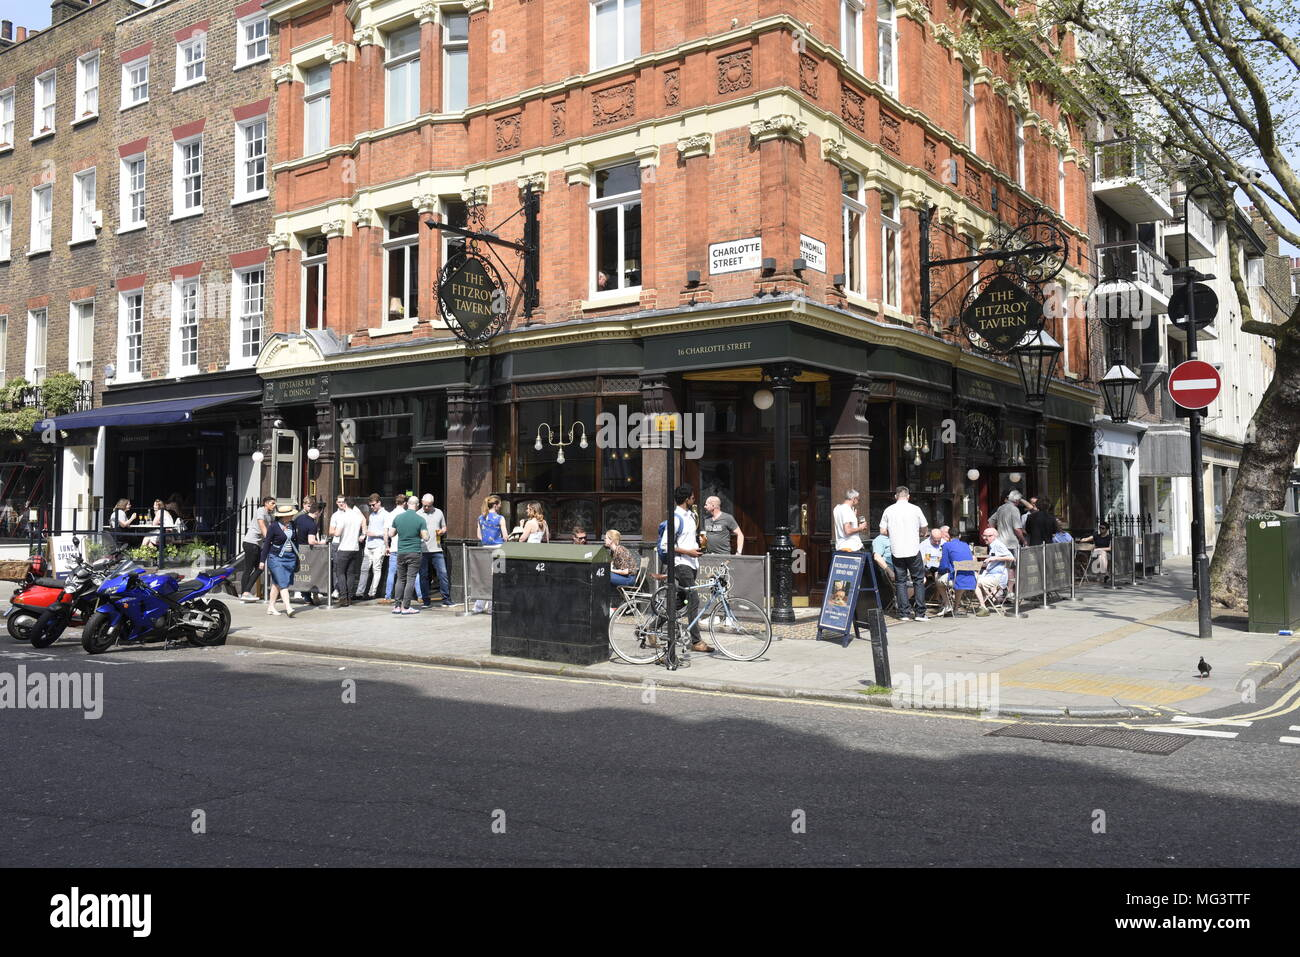 The Fitzroy Tavern, 16 Charlotte St, Fitzrovia, London W1T 2LY. A traditional London pub attracting students and media types. - Stock Image